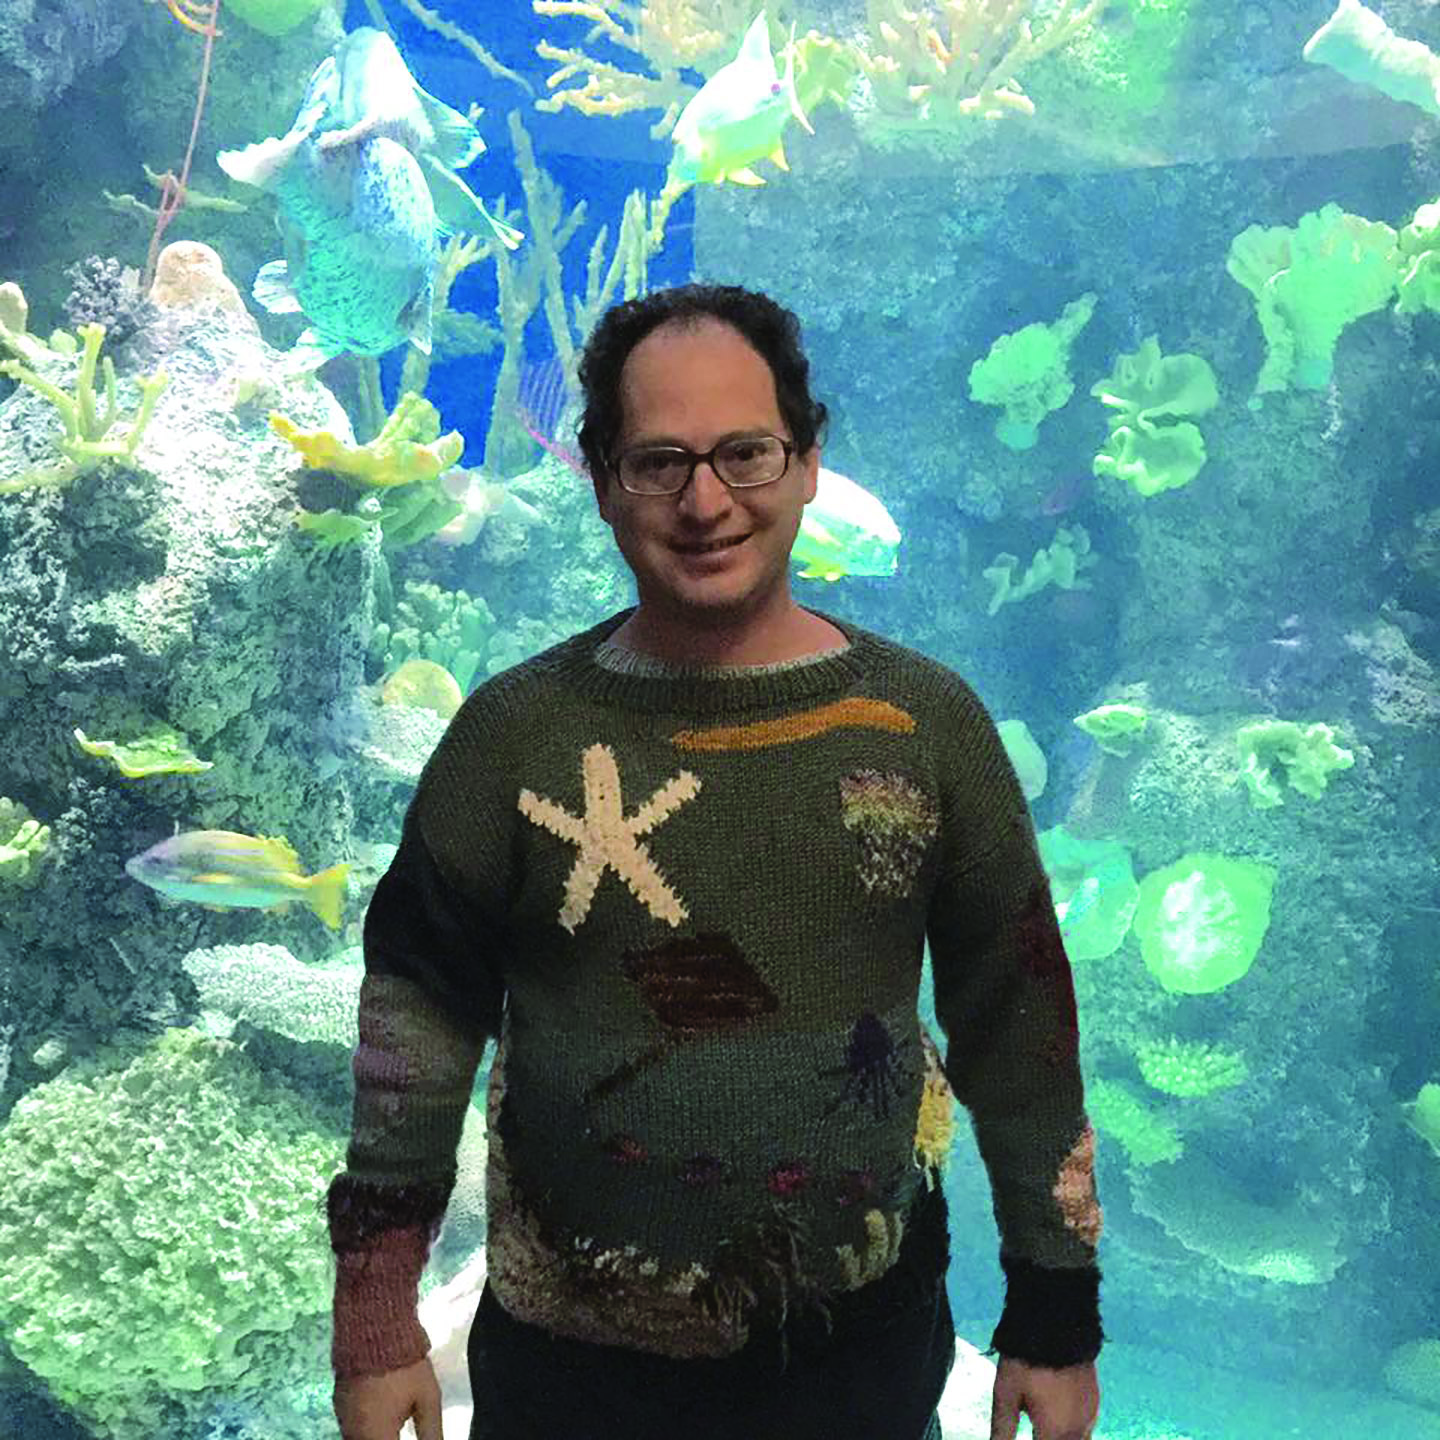 Sam Barsky sports a home-made sweater at the Shedd Aquarium in Chicago. (Provided)